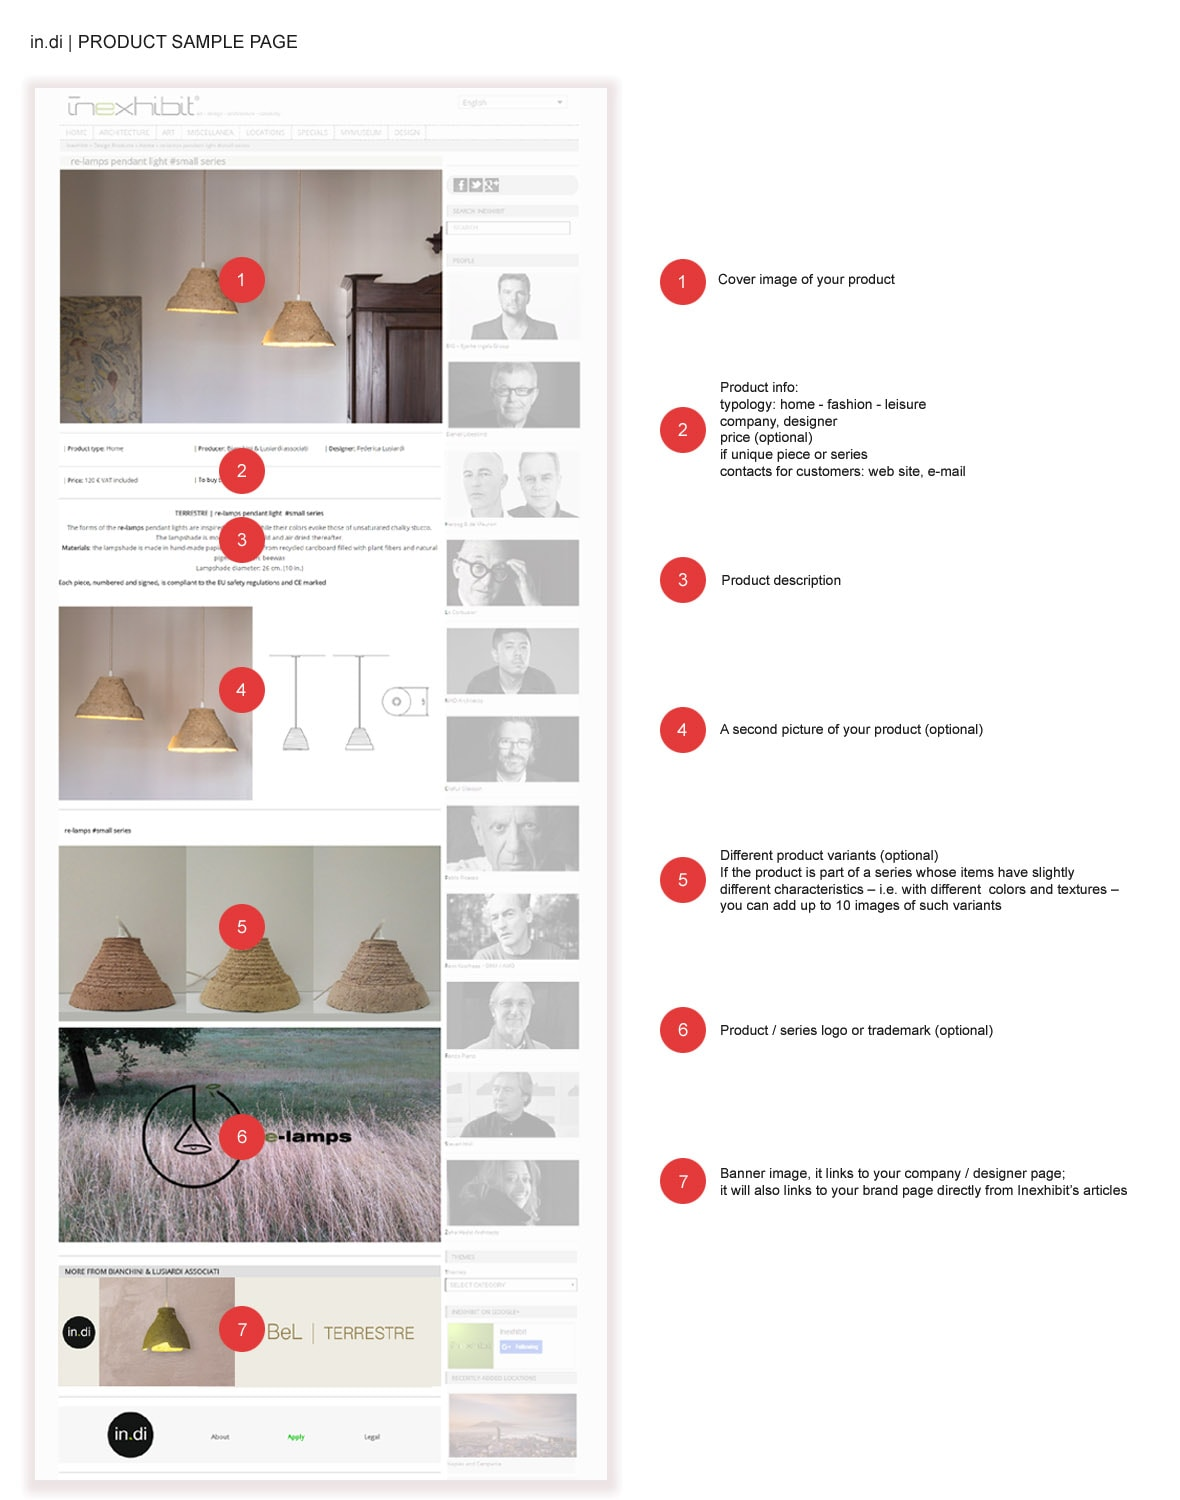 indi-product-page-sample-eng-2